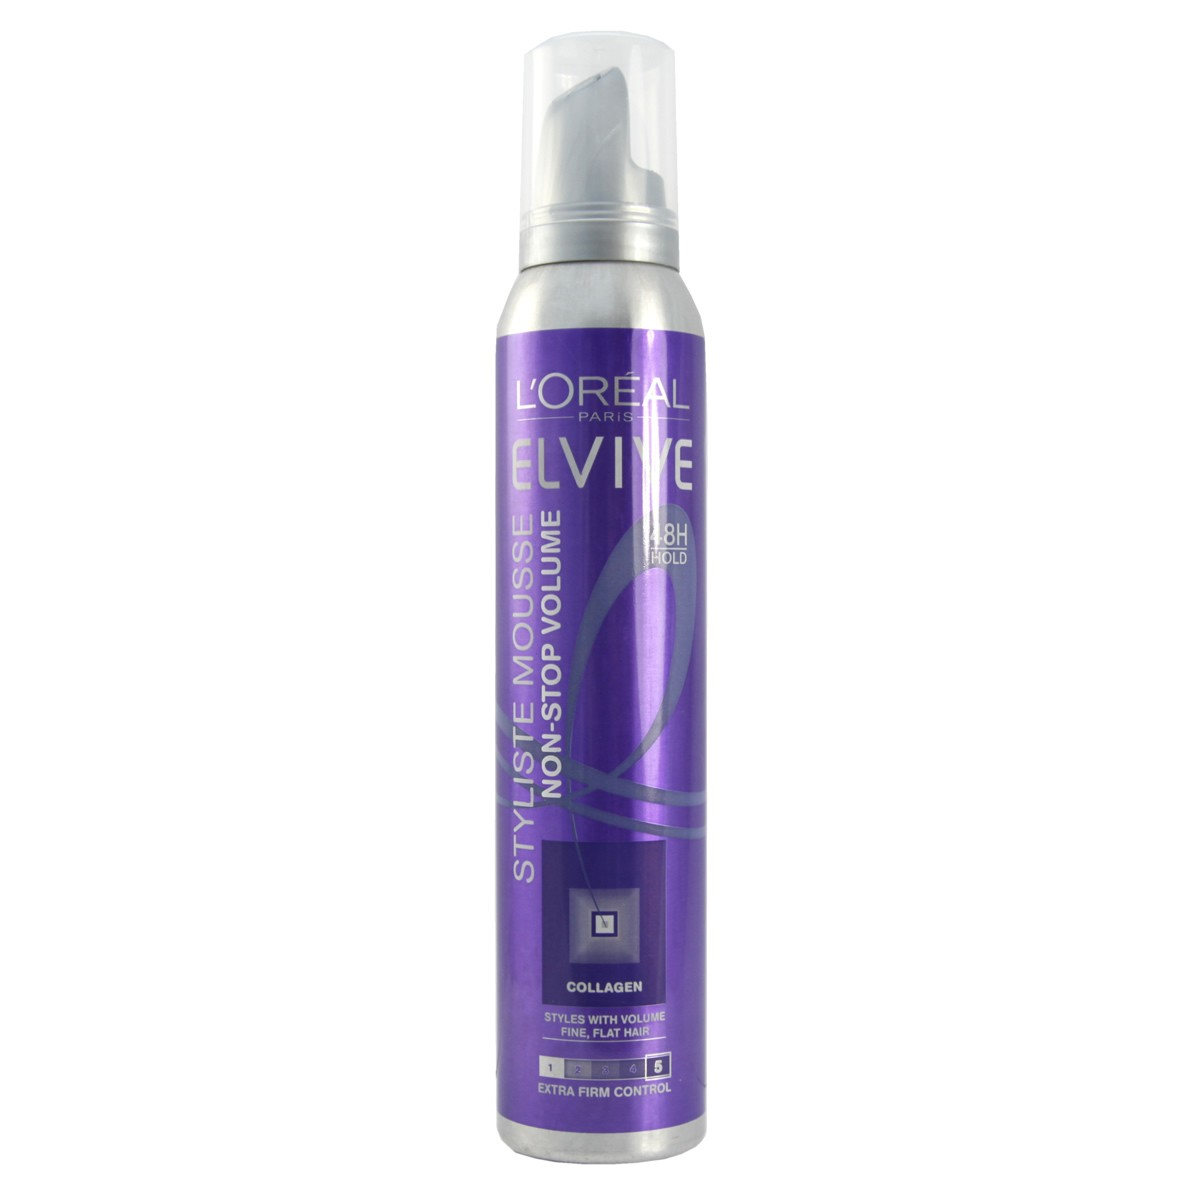 L'Oreal Paris Elvive Styliste Non- Stop Volume Extra Firm Mousse